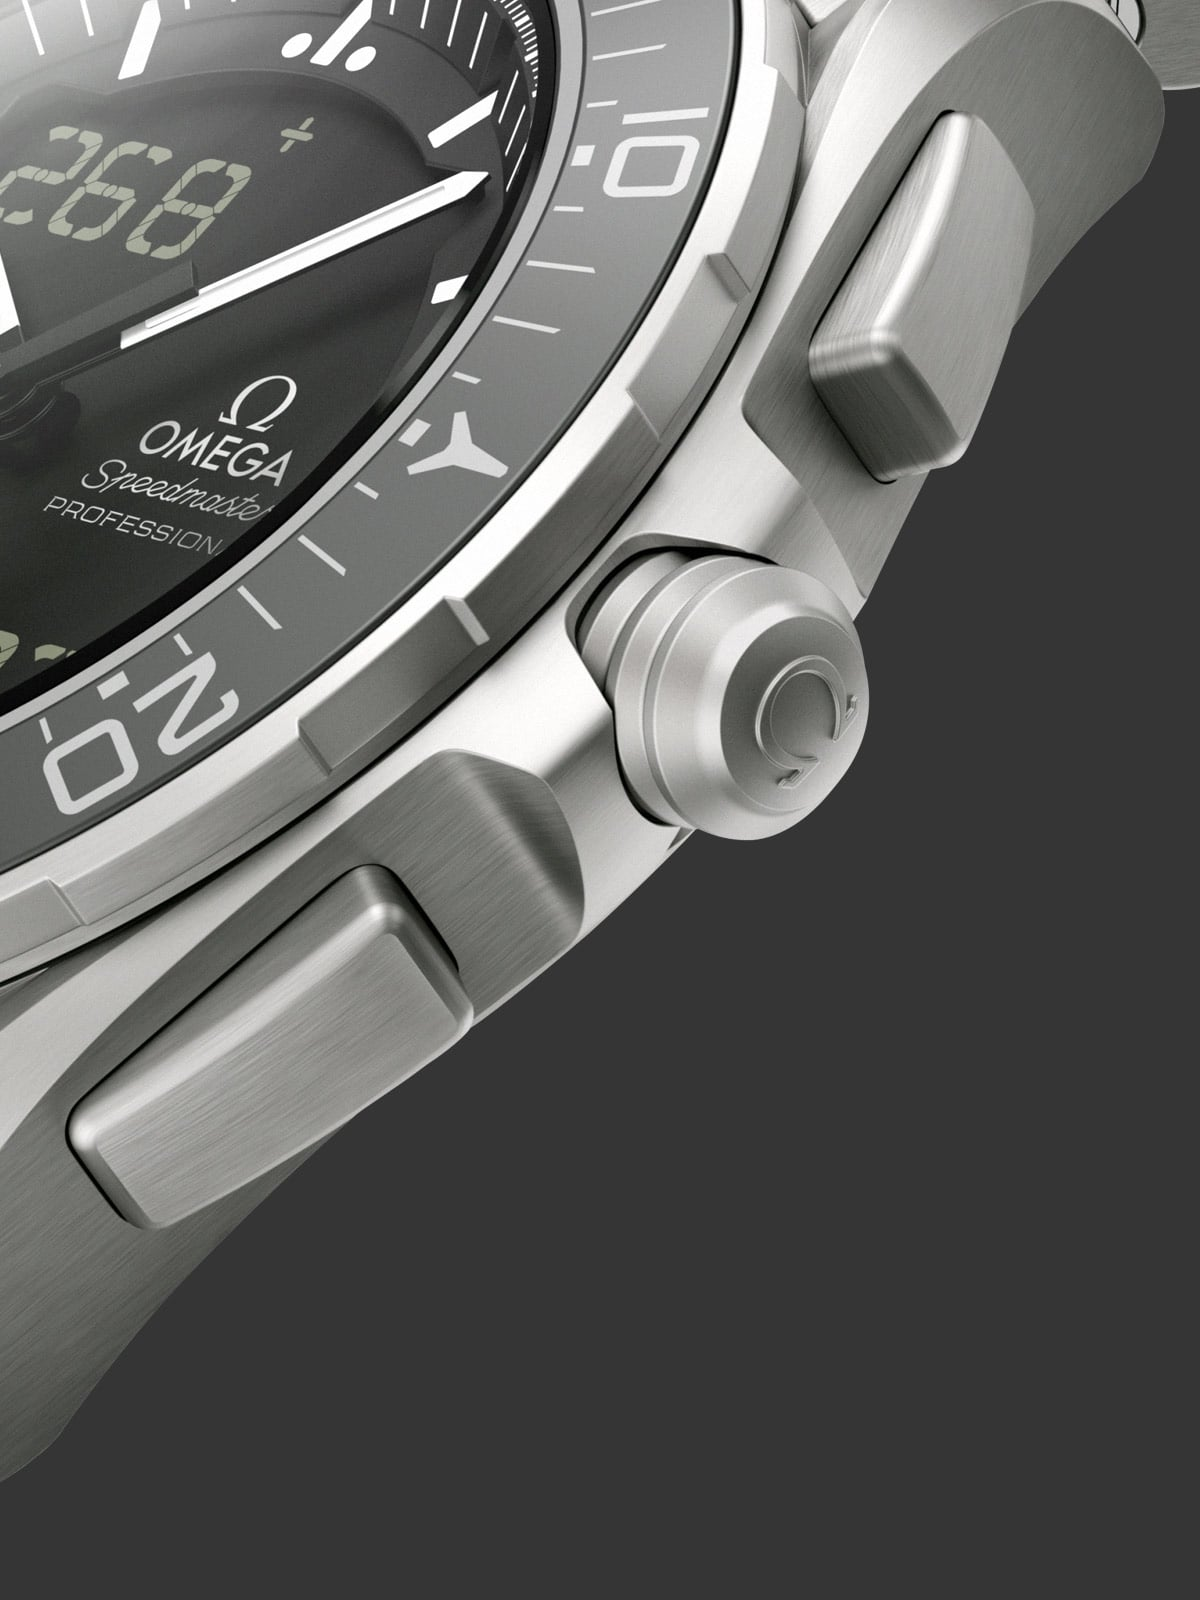 Close-up view of the Omega SPEEDMASTER SKYWALKER X-33 titanium case with its brushed crown and buttons